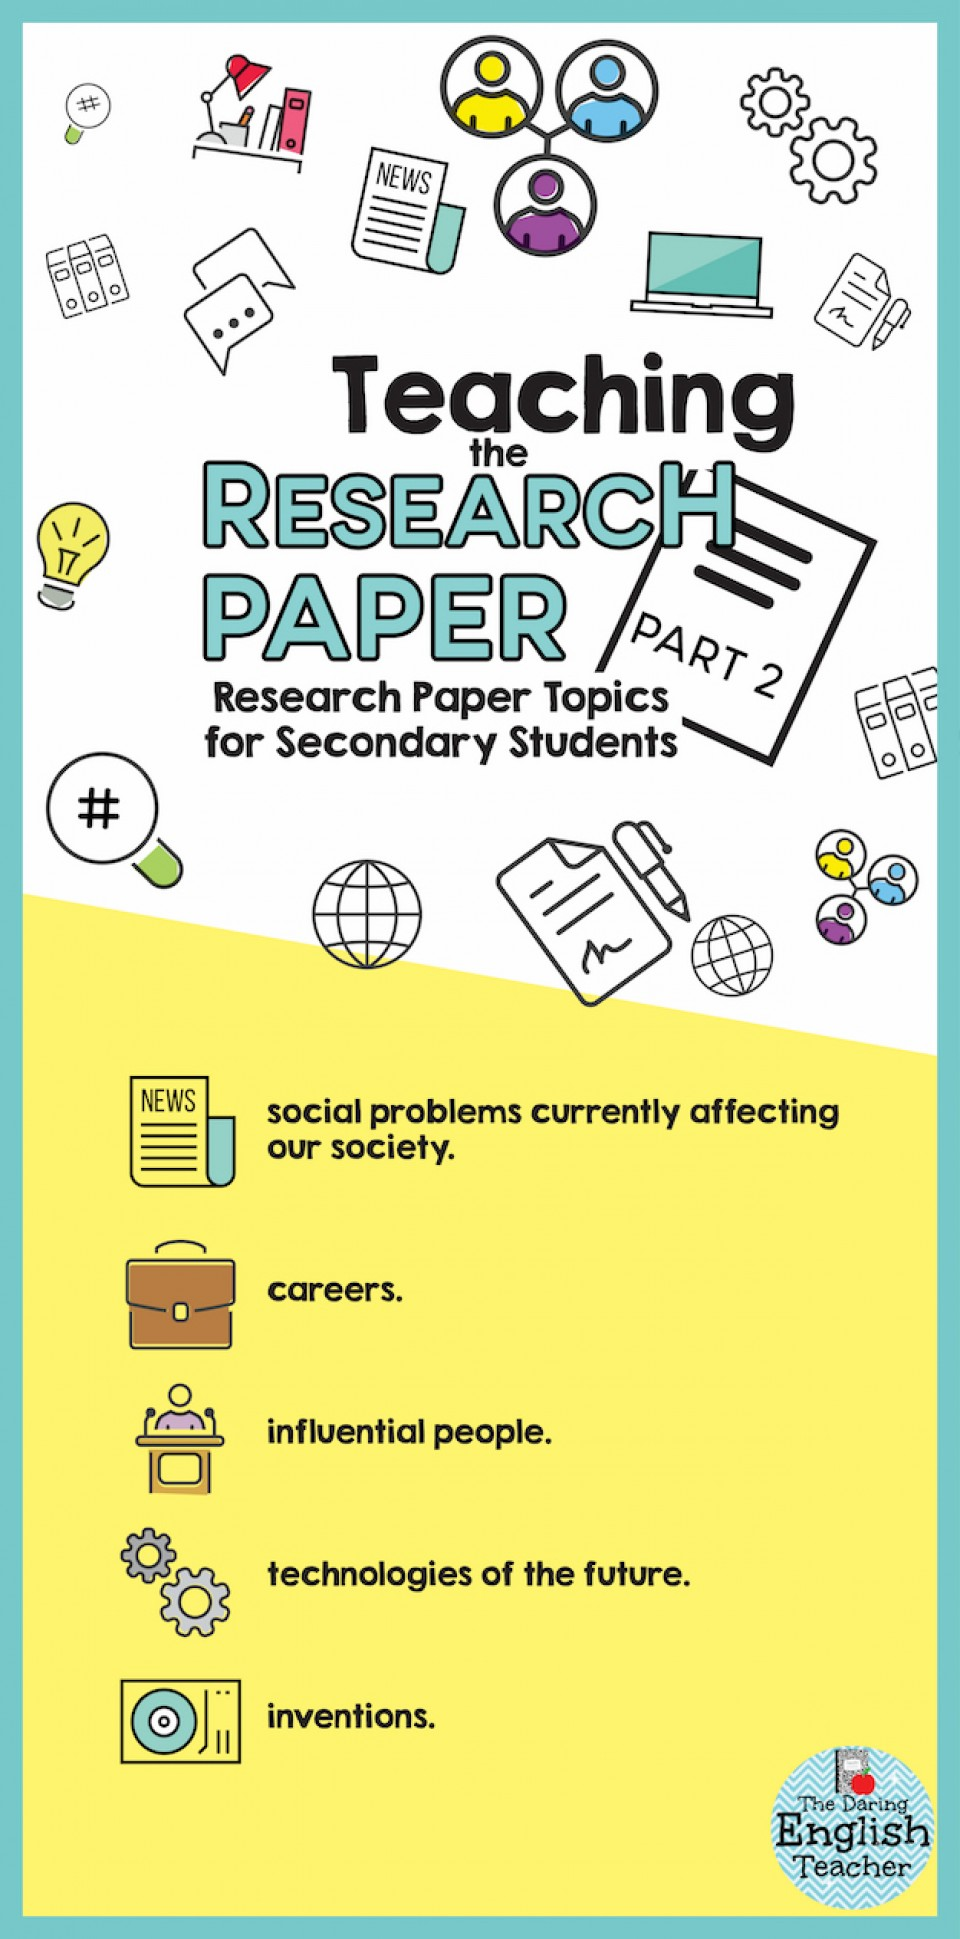 012 Research Paper Infographic2bp22b2 Topics High Incredible School Biology Science Seniors 960